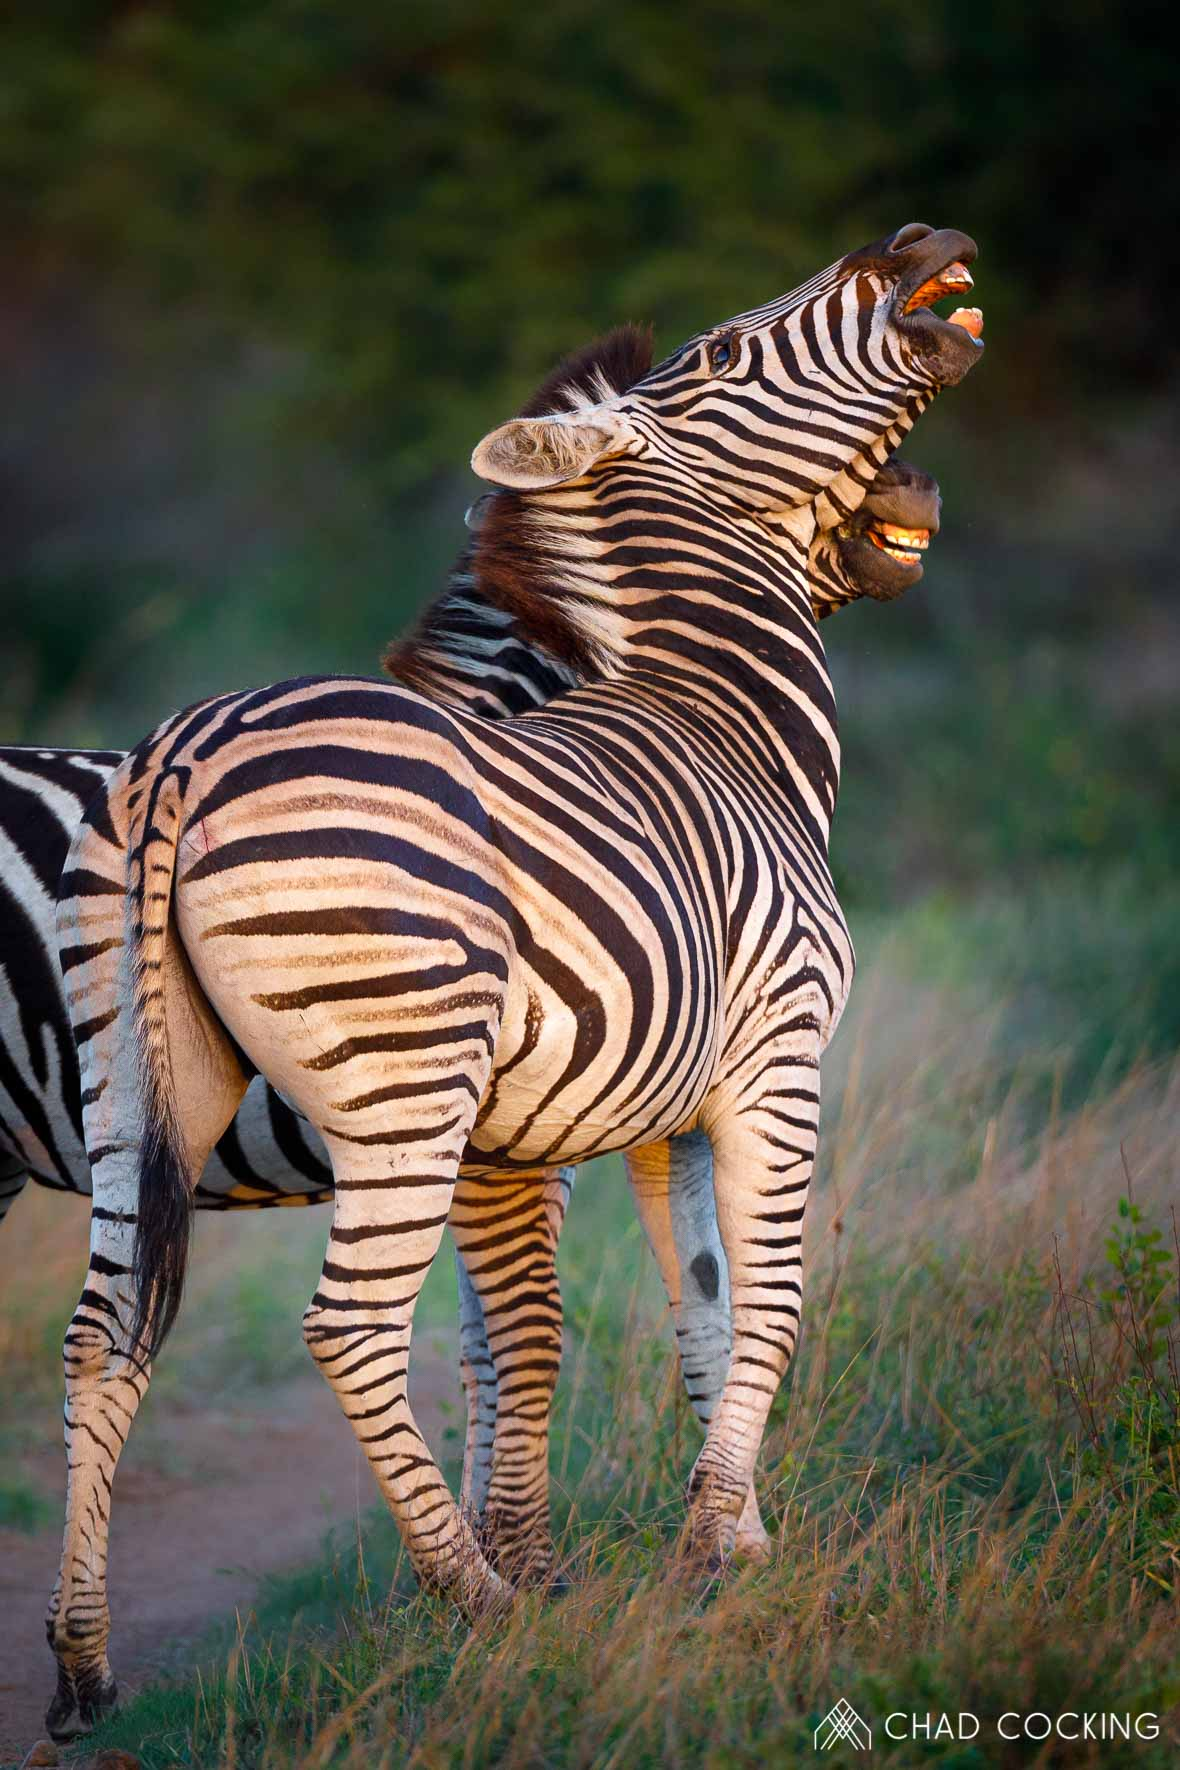 Tanda Tula - zebra sparring in the Timbavati